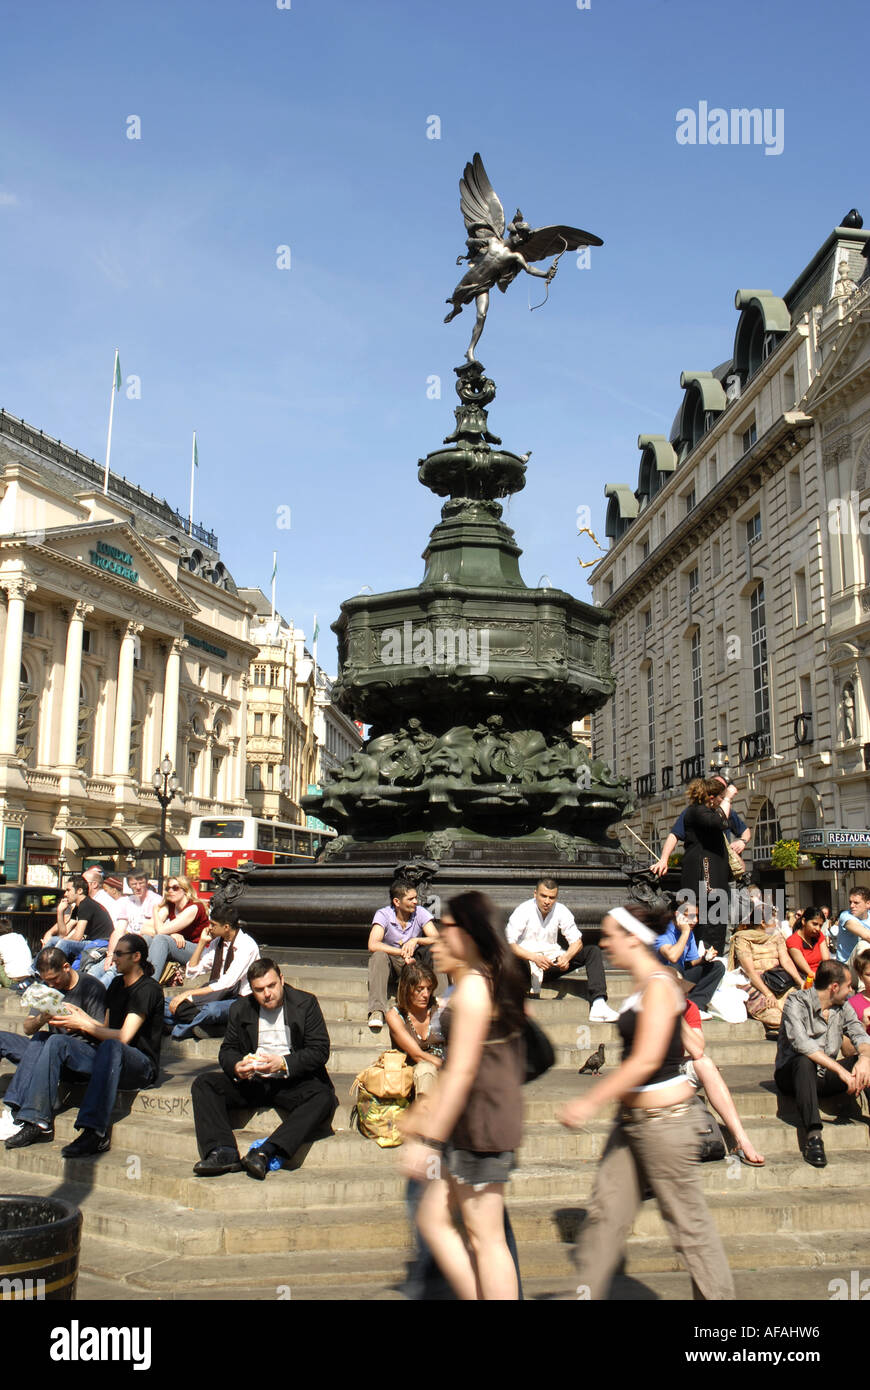 Tourists sitting on the steps around the  Bronze Statue Of  Eros, Piccadilly Circus, London, England. Monument erected 1893 - Stock Image